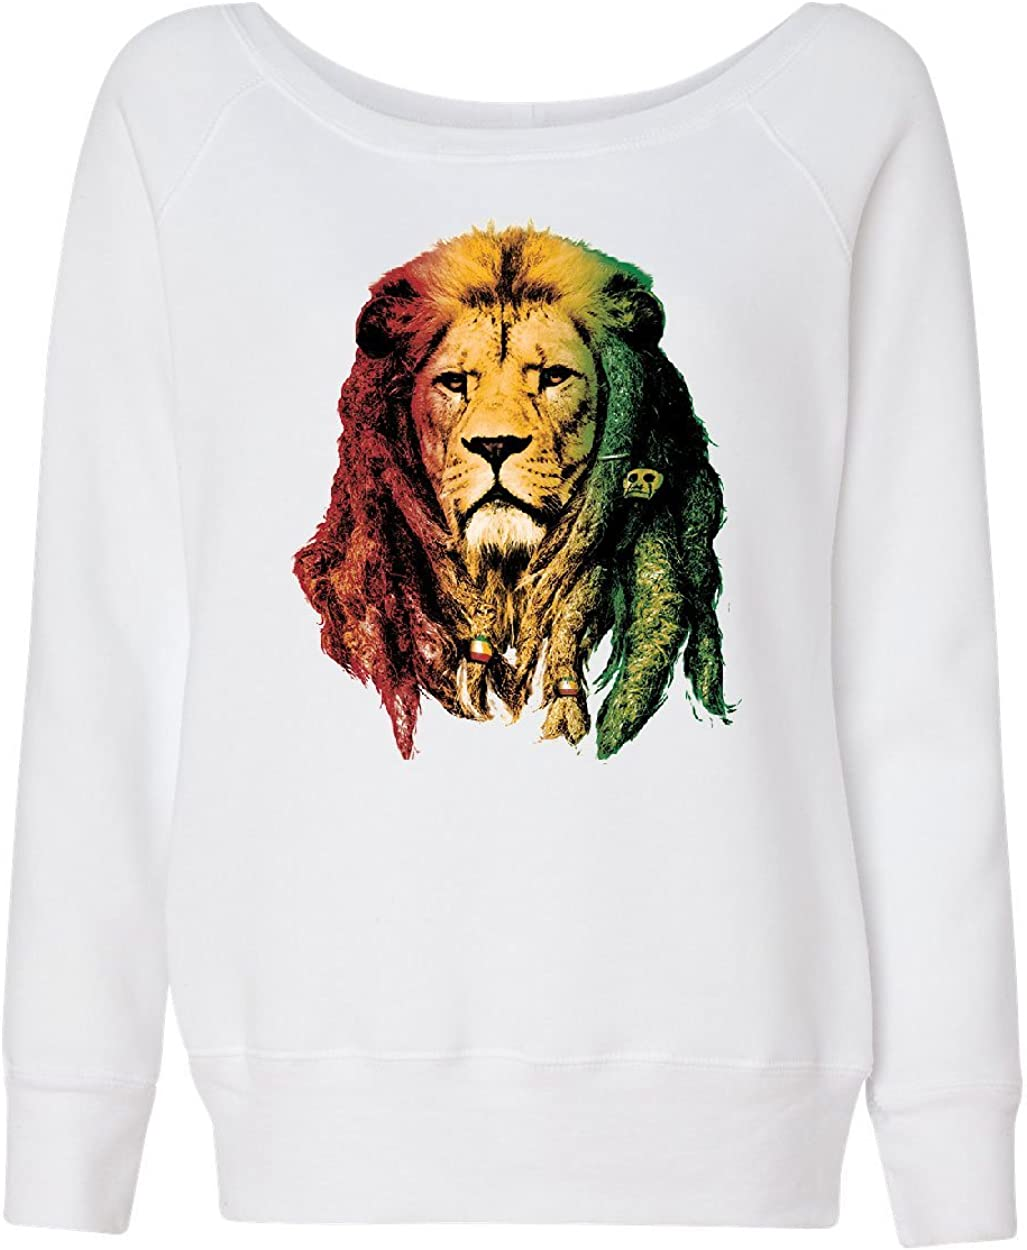 Rasta Lion Jah Women/'s V-Neck T-Shirt Smoking 420 Dreads Reggae Jamaica Weed